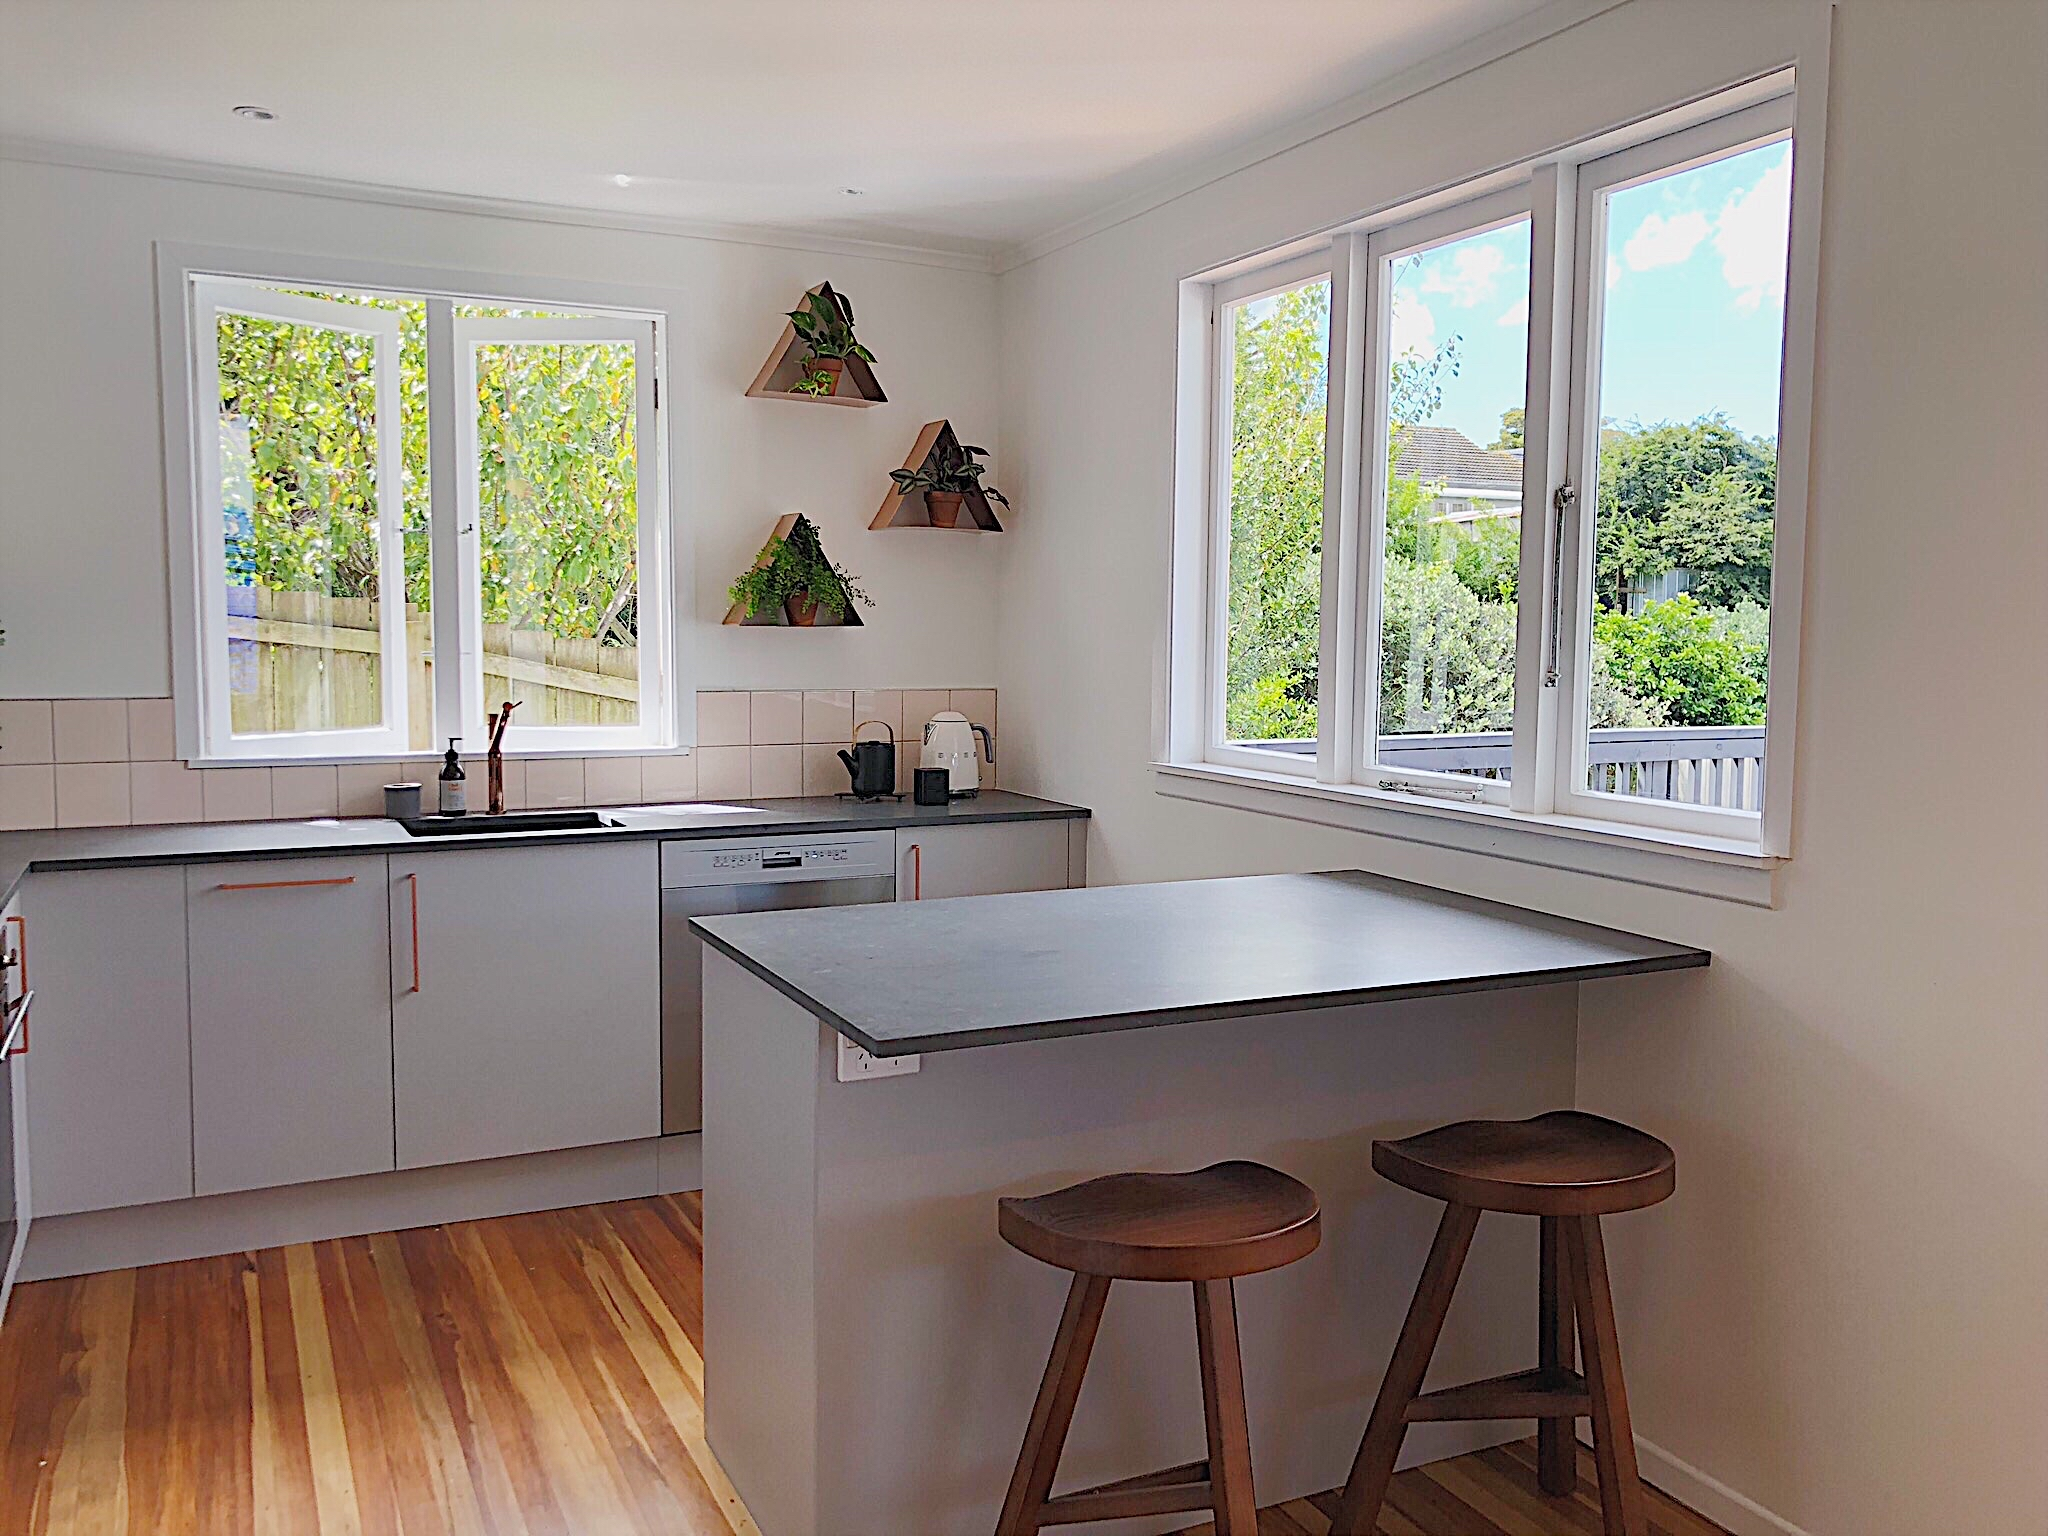 Pearson and Projects Relocatable Reno Kitchen Project - 18.jpg